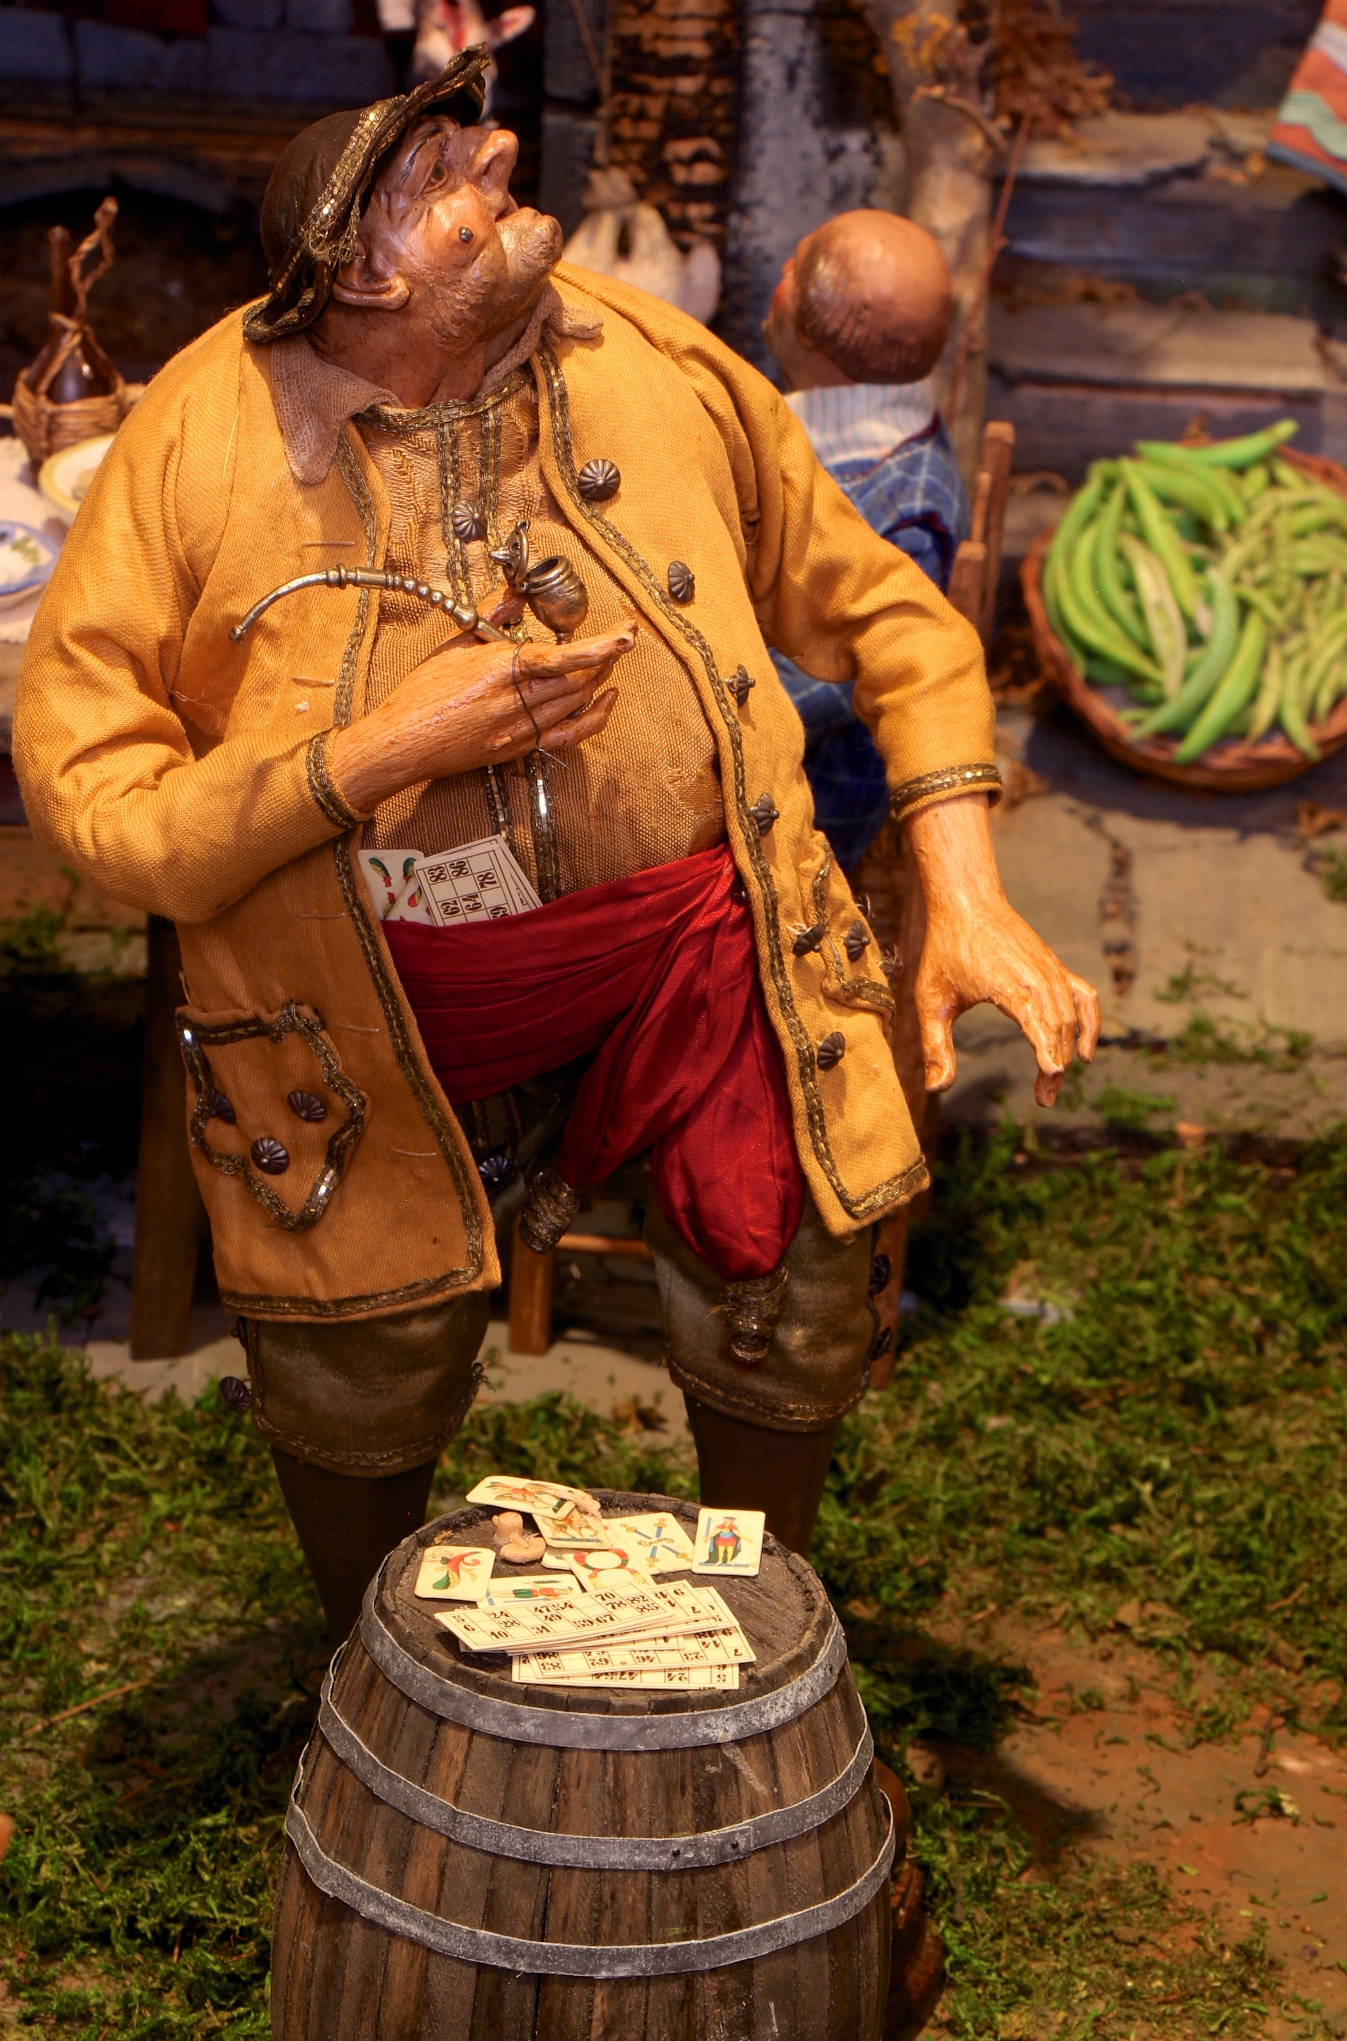 Figure 10: Outside the tavern, a gambler smokes his pipe and tries to lure people into a game. Extra cards are hidden inside his cummerbund.